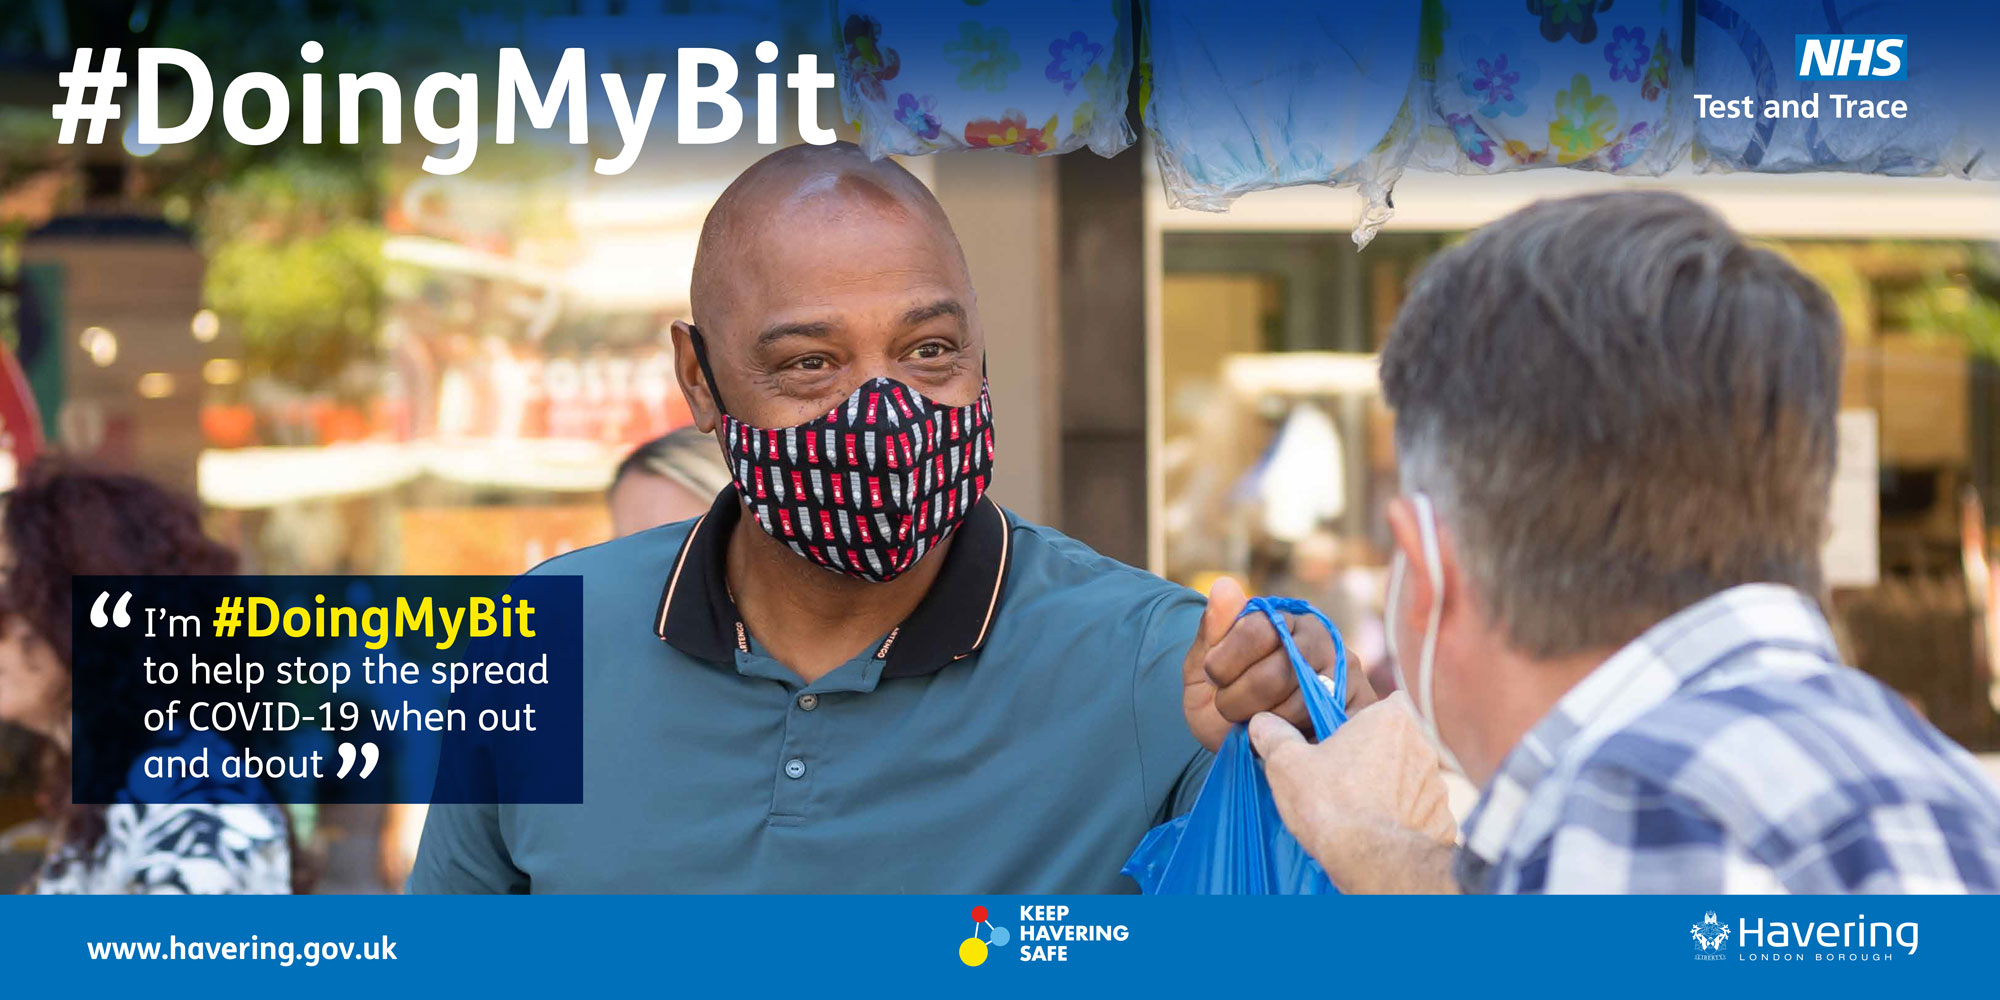 5950-DoingMyBit